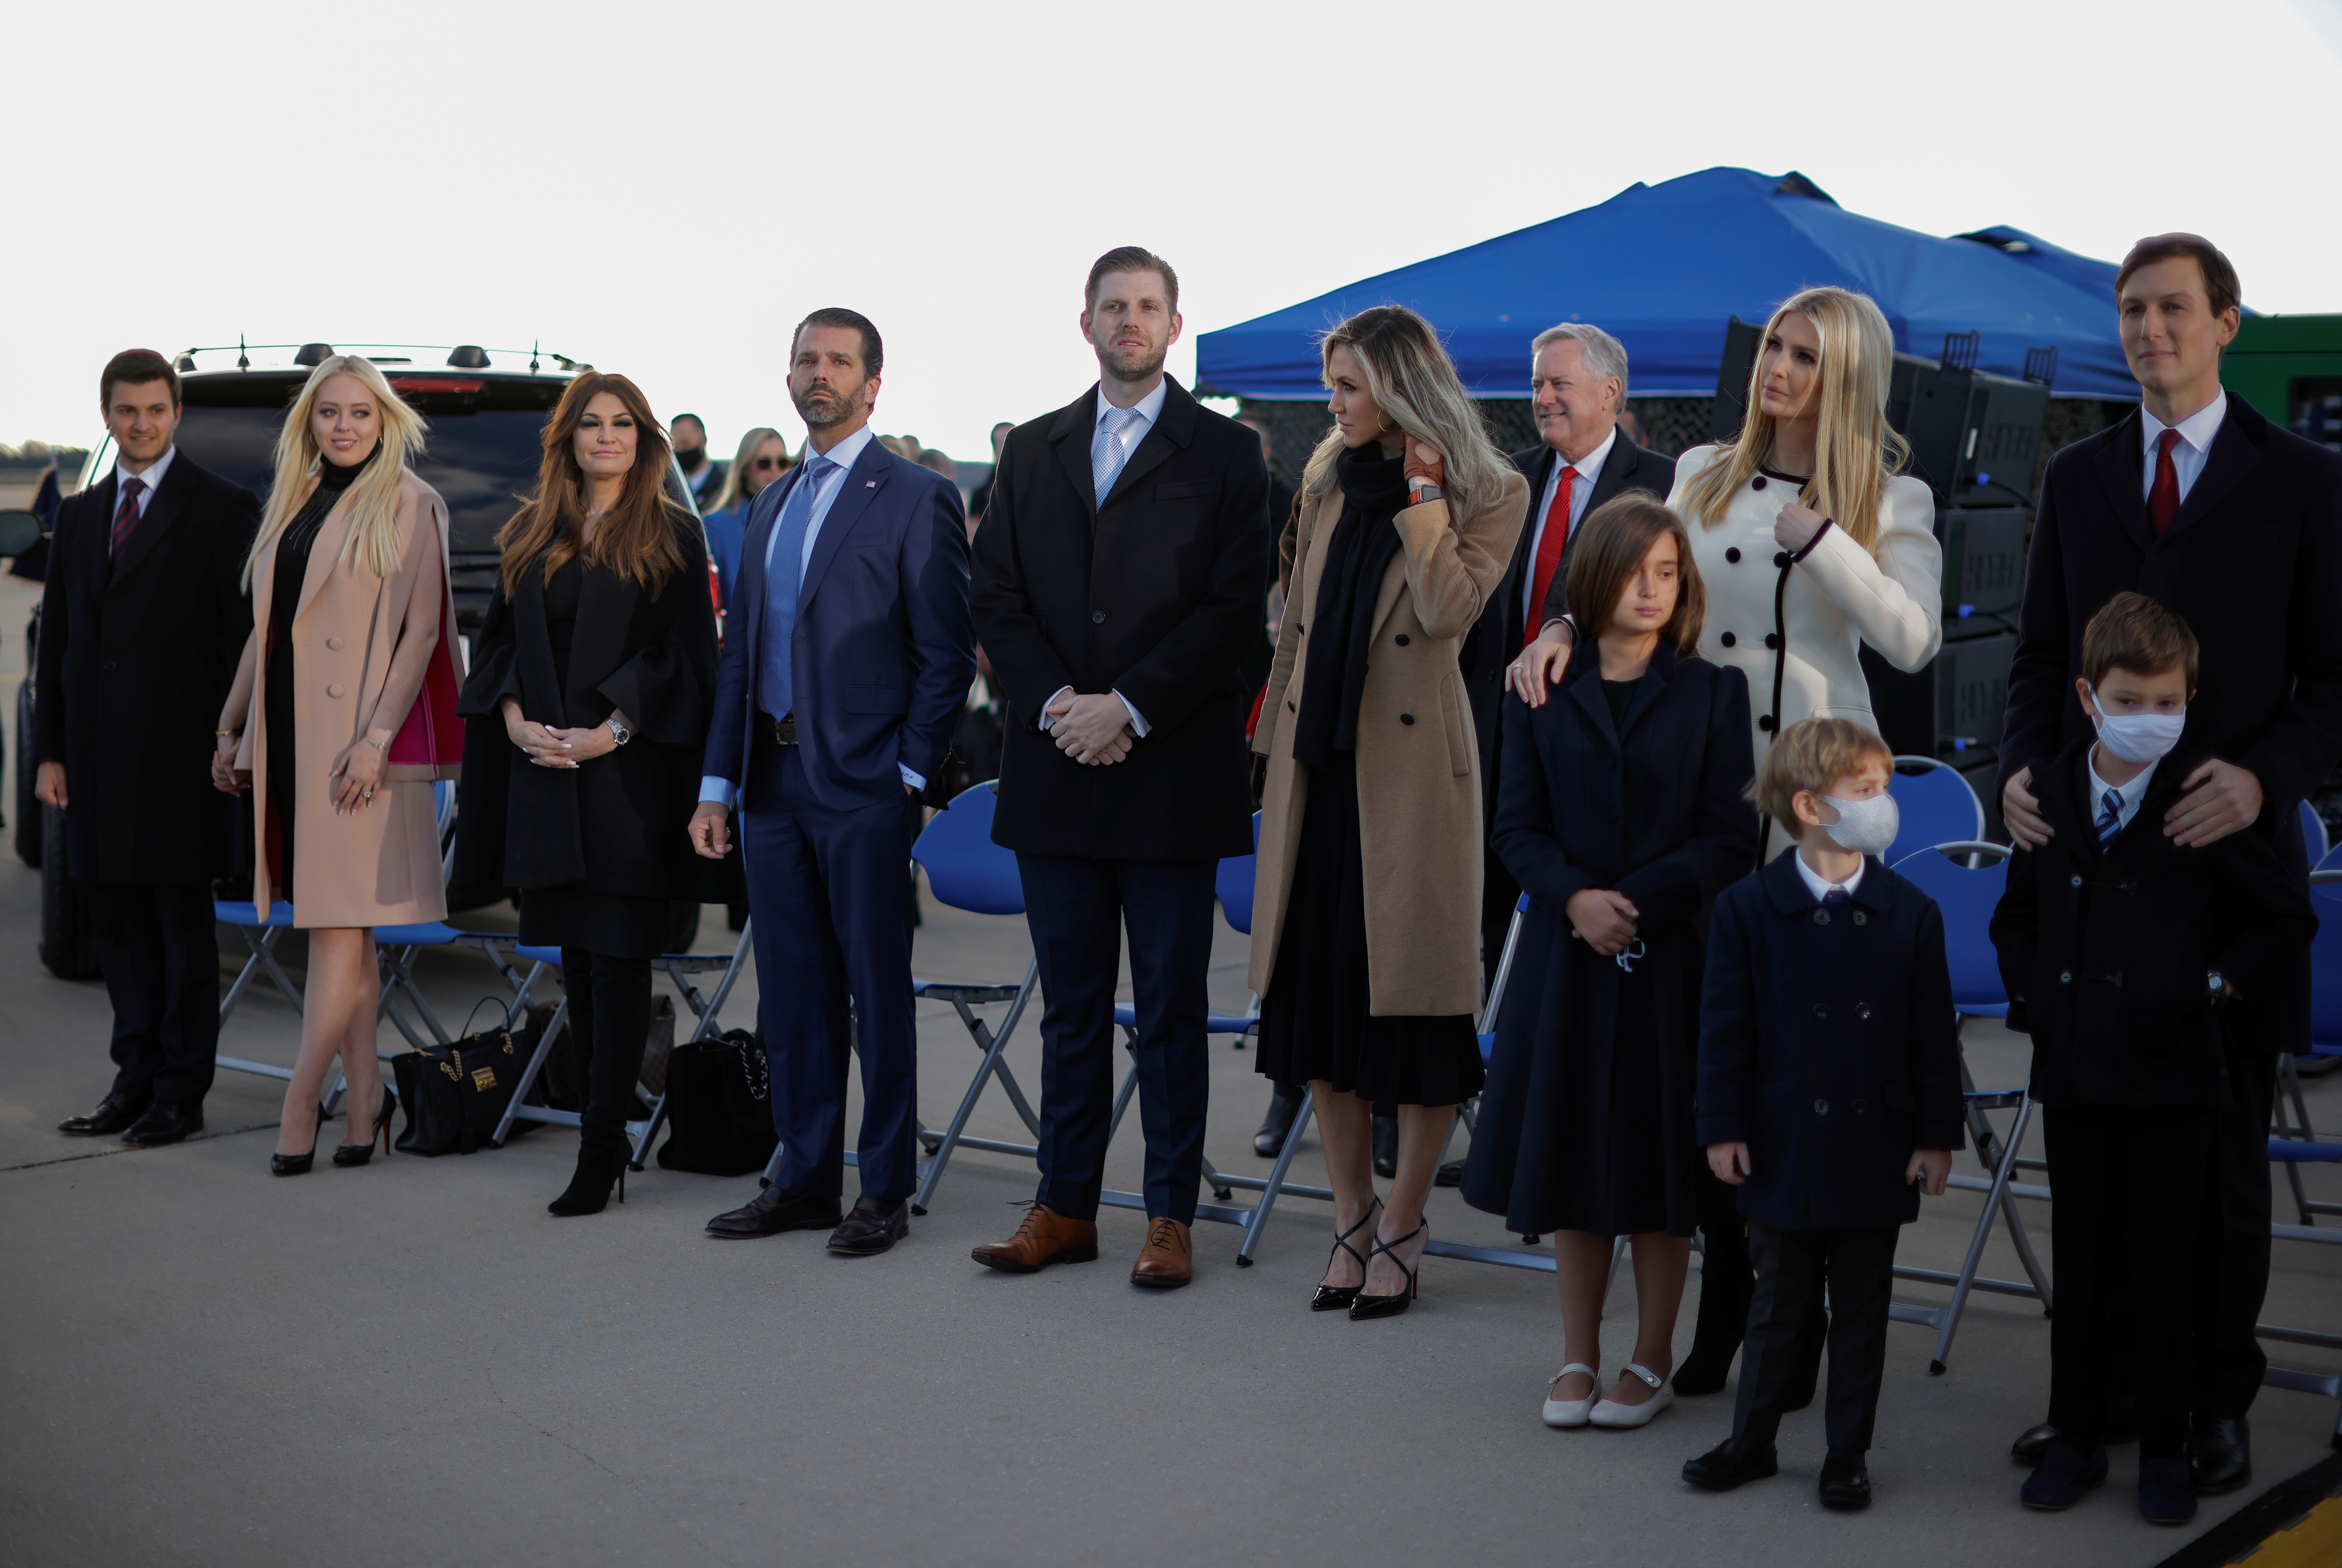 Donald Trump Jr, Ivanka Trump, her husband Jared Kushner and family members attend the departure ceremony of U.S. President Donald Trump at the Joint Base Andrews, Maryland, U.S., January 20, 2021. REUTERS/Carlos Barria